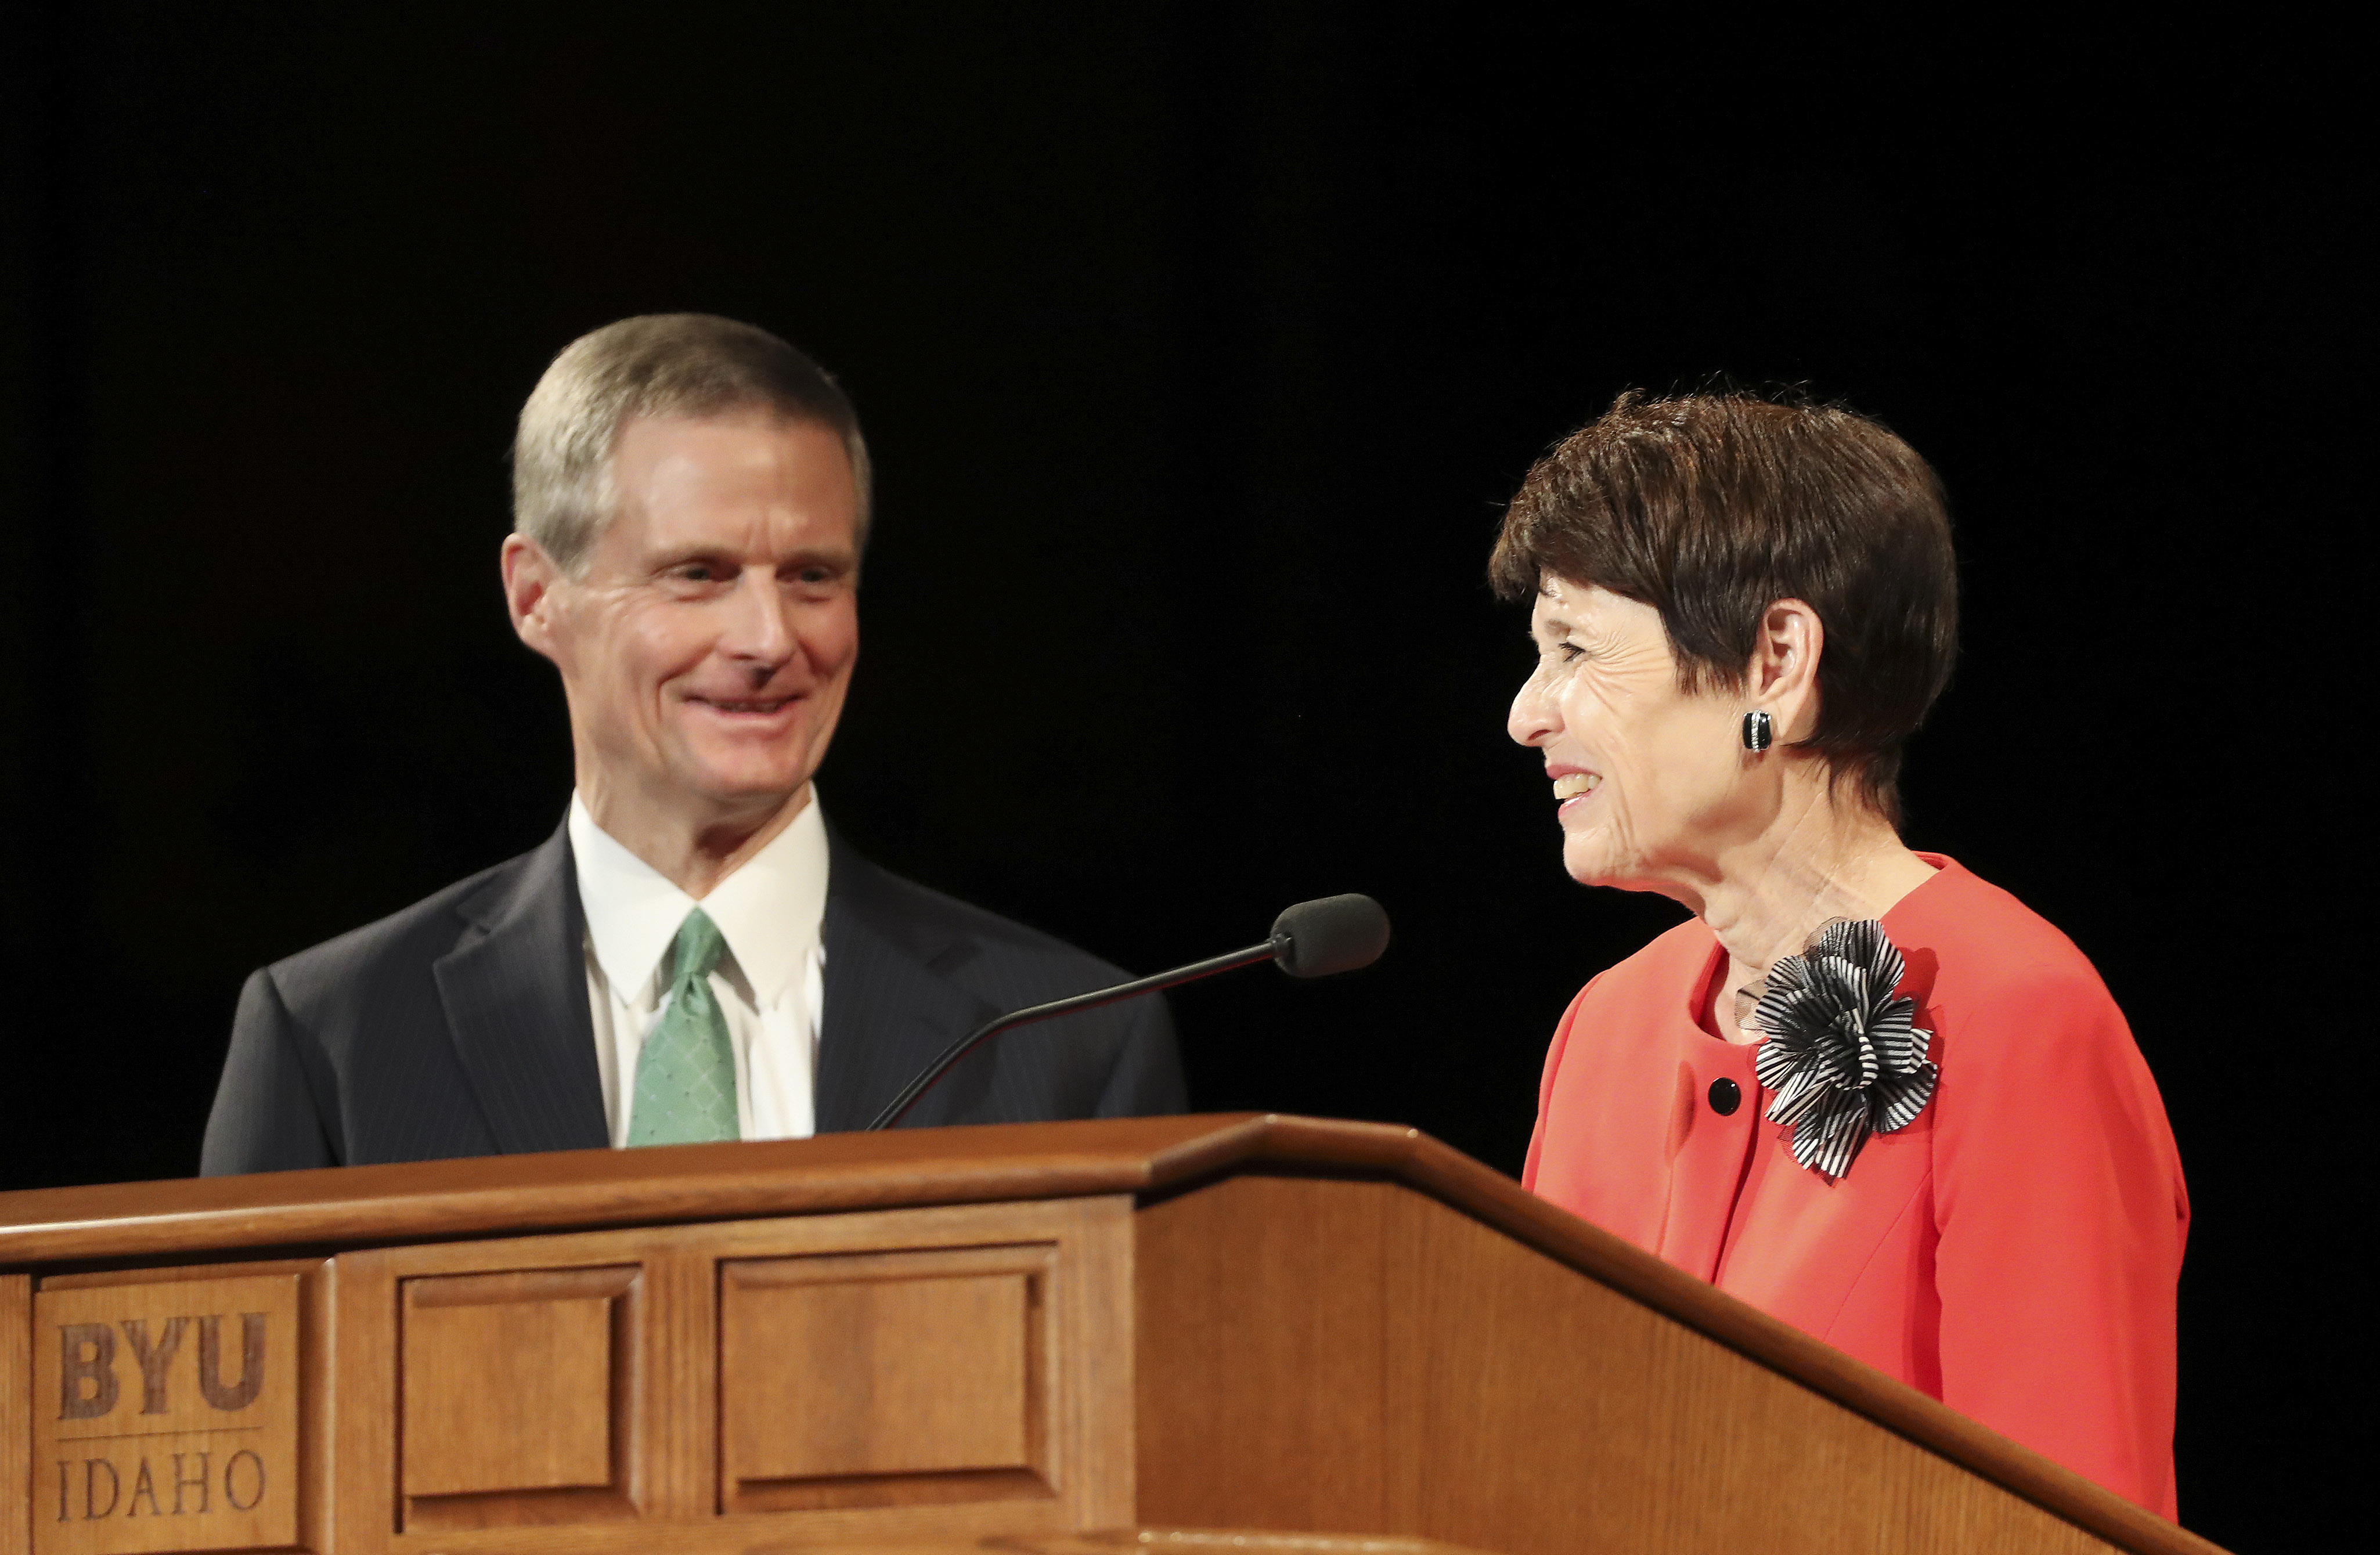 Elder David A. Bednar, of the Quorum of the Twelve Apostles of The Church of Jesus Christ of Latter-day Saints, and his wife, Sister Susan Bednar, speak during a fireside at BYU Idaho in Rexburg, Idaho, on Sunday, Sept. 22, 2019.